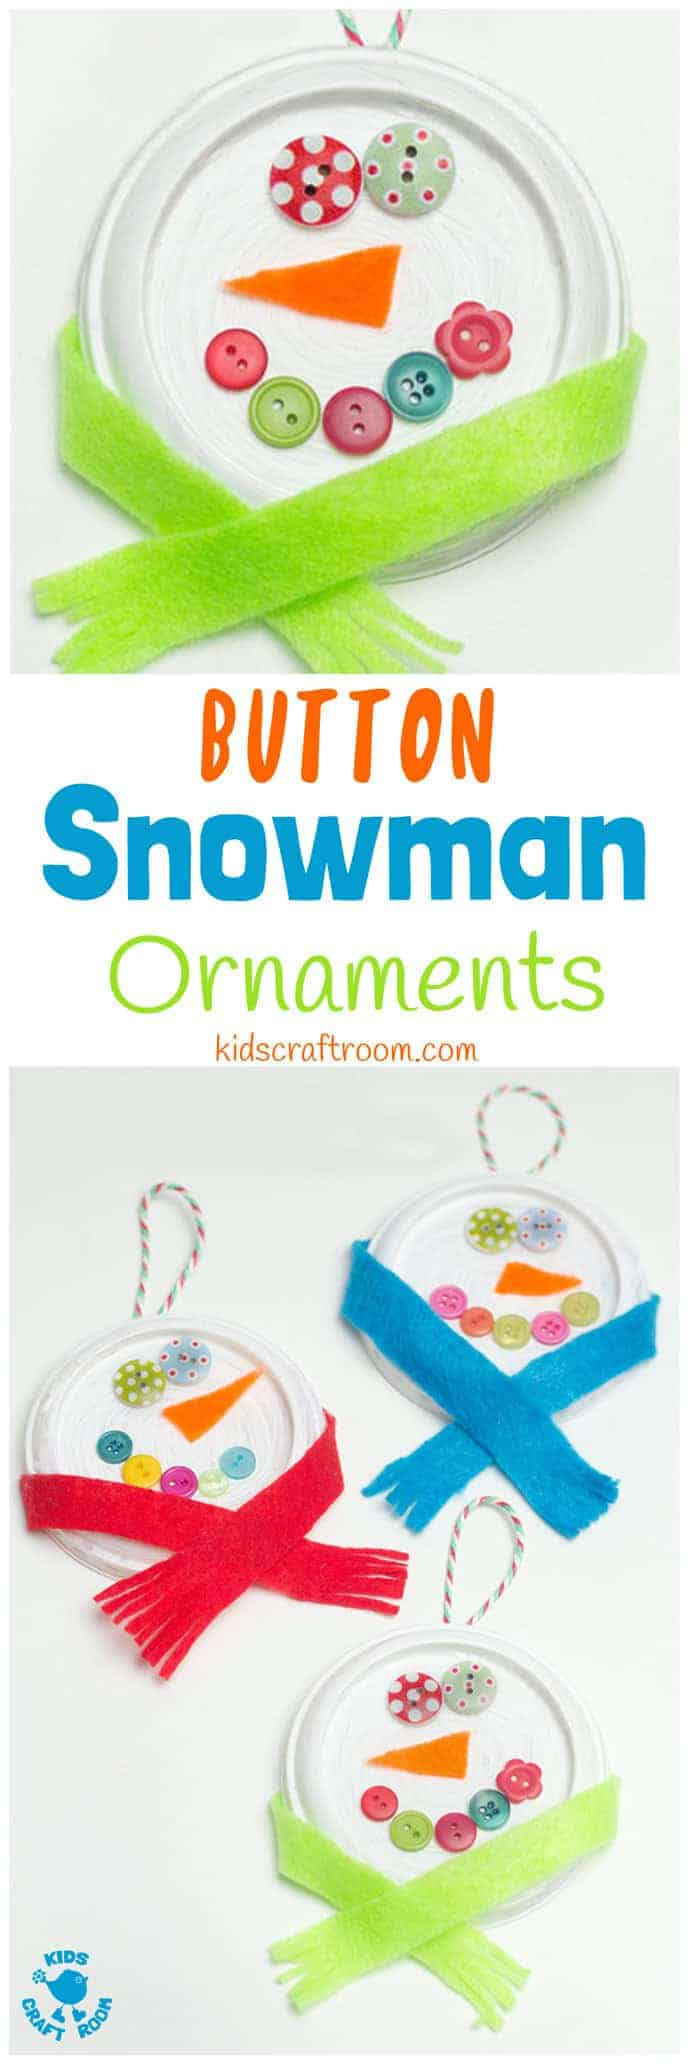 BUTTON SNOWMAN ORNAMENTS - Button eyes and snug scarves make these the cutest snowman craft for kids to make this Winter. A thrifty recycled Christmas and Winter craft for kids. #snowman #snowmancrafts #buttoncrafts #kidscrafts #ornaments #christmas #christmascrafts #winter #wintercrafts #recycledcrafts #wintercraftsforkids #craftideasforkids #kidscraftroom